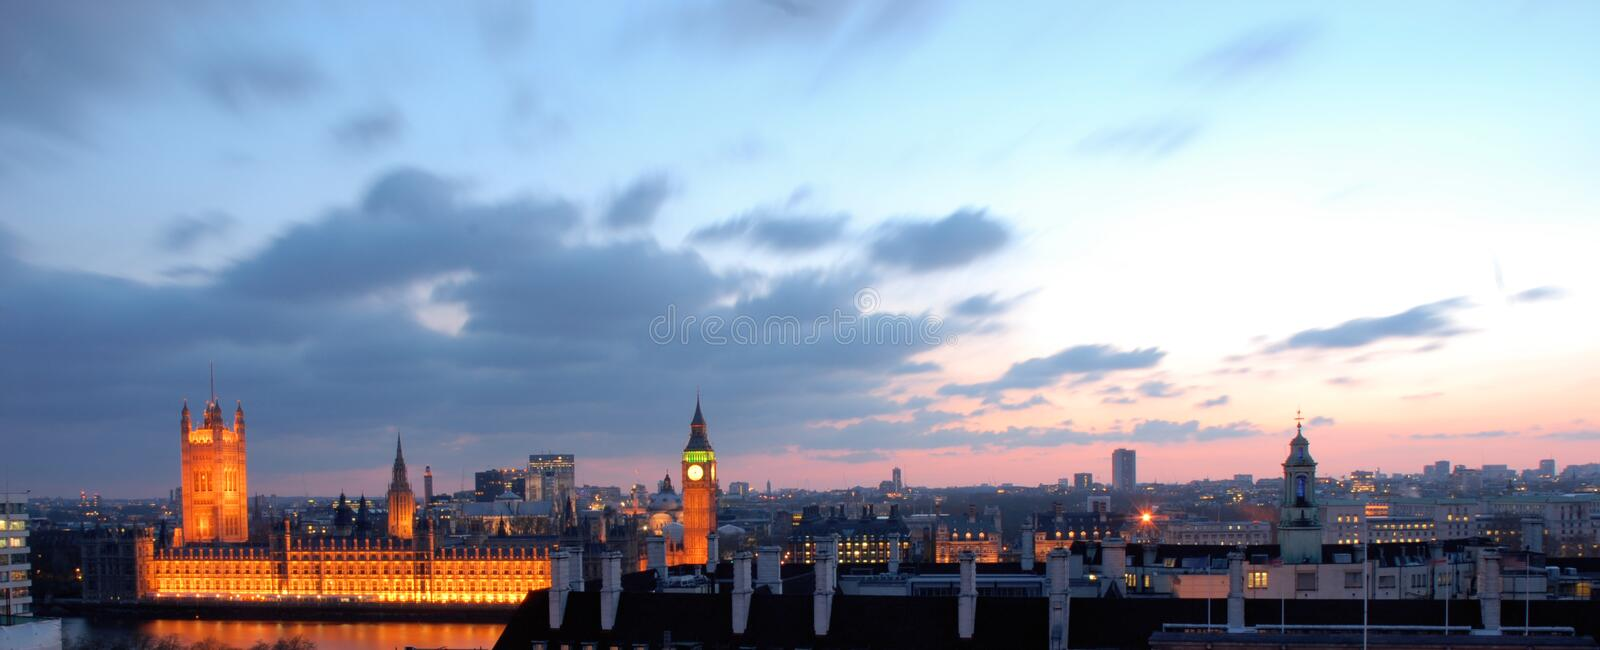 Download London skyline at dusk stock image. Image of travel, urban - 5237205